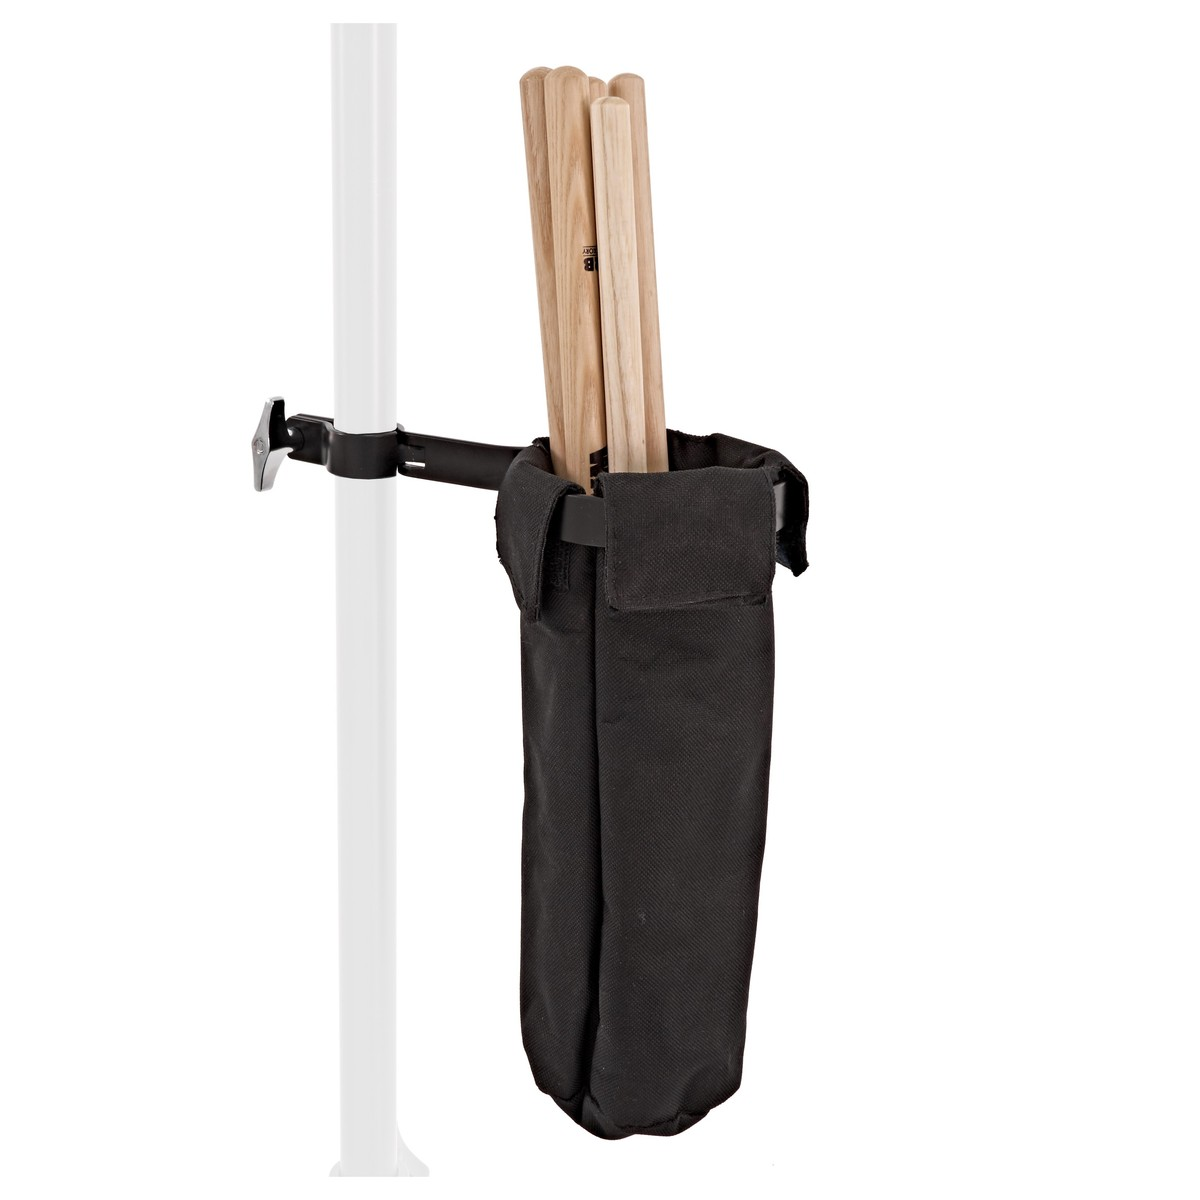 Image of Drumstick Holder by Gear4music